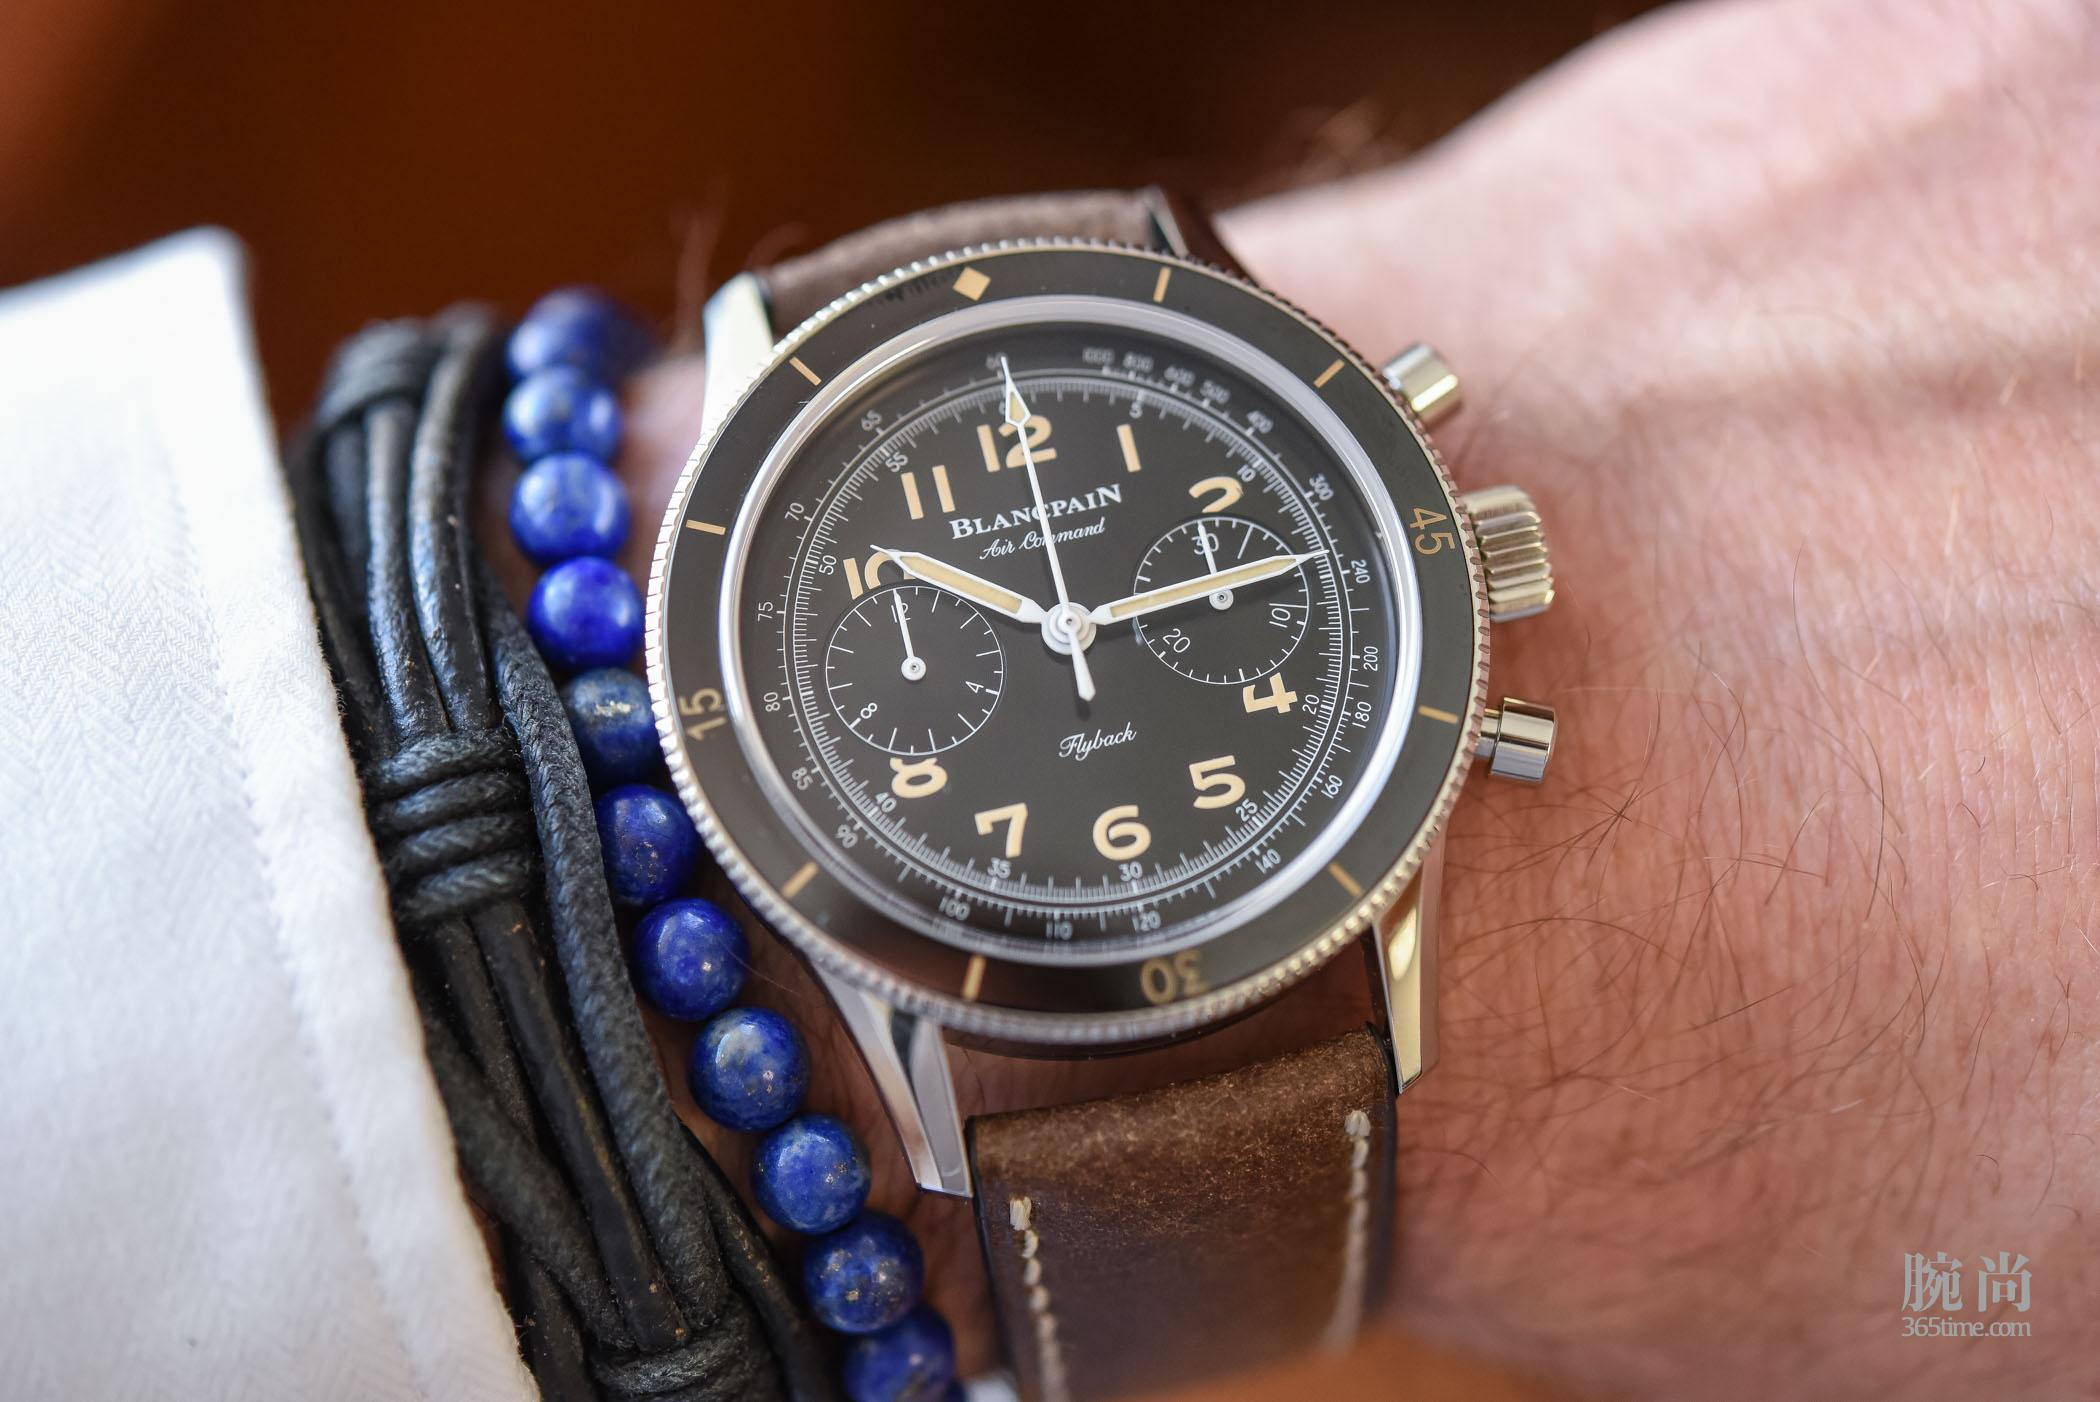 Blancpain-Air-Command-Chronograph-Re-Edition-2019-reference-AC01-1130-63A-5.jpg